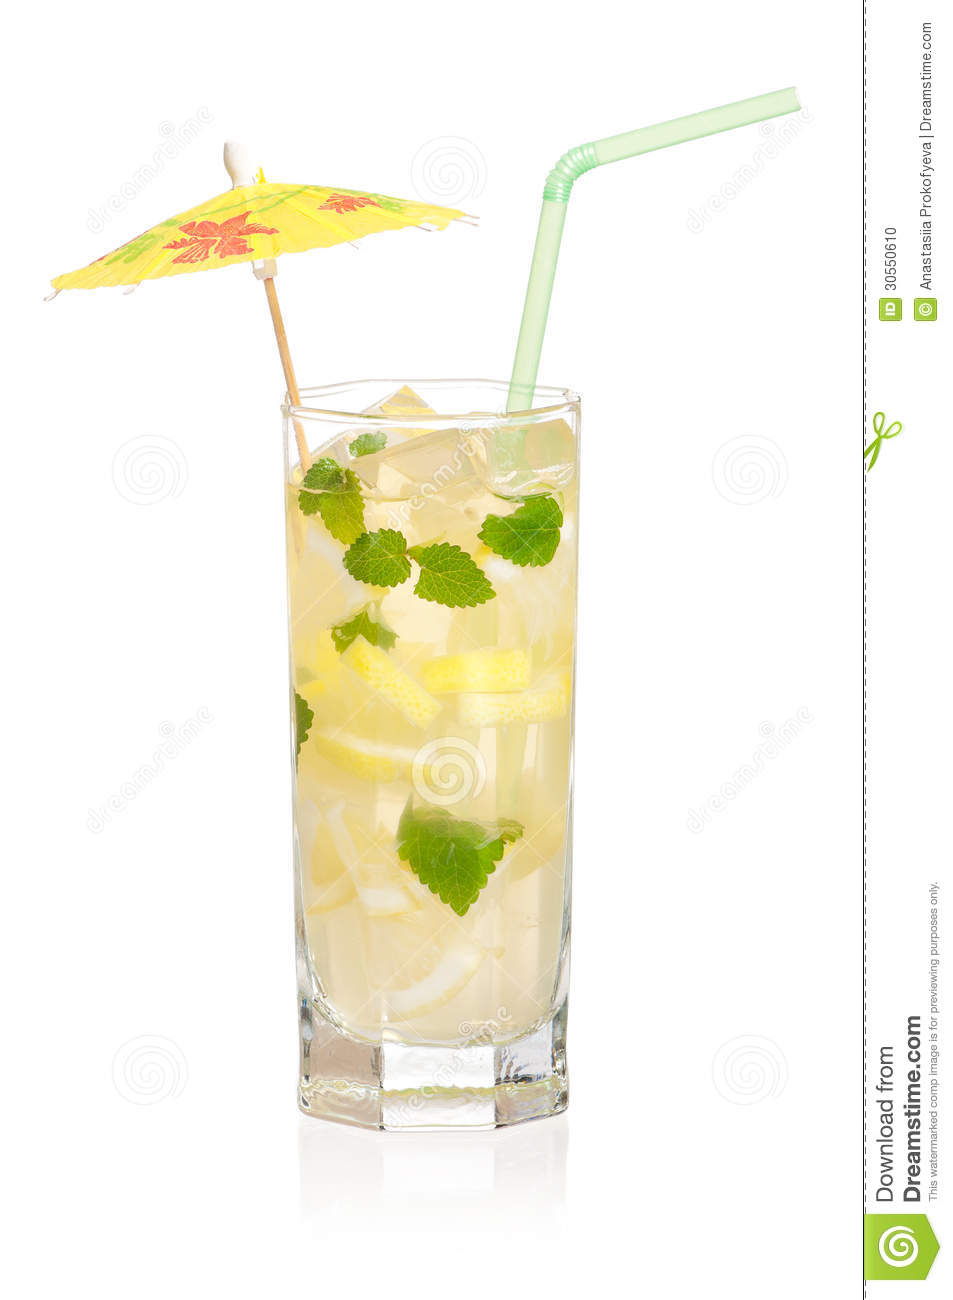 Glass of lemonade with lemon and mint isolated on white background.